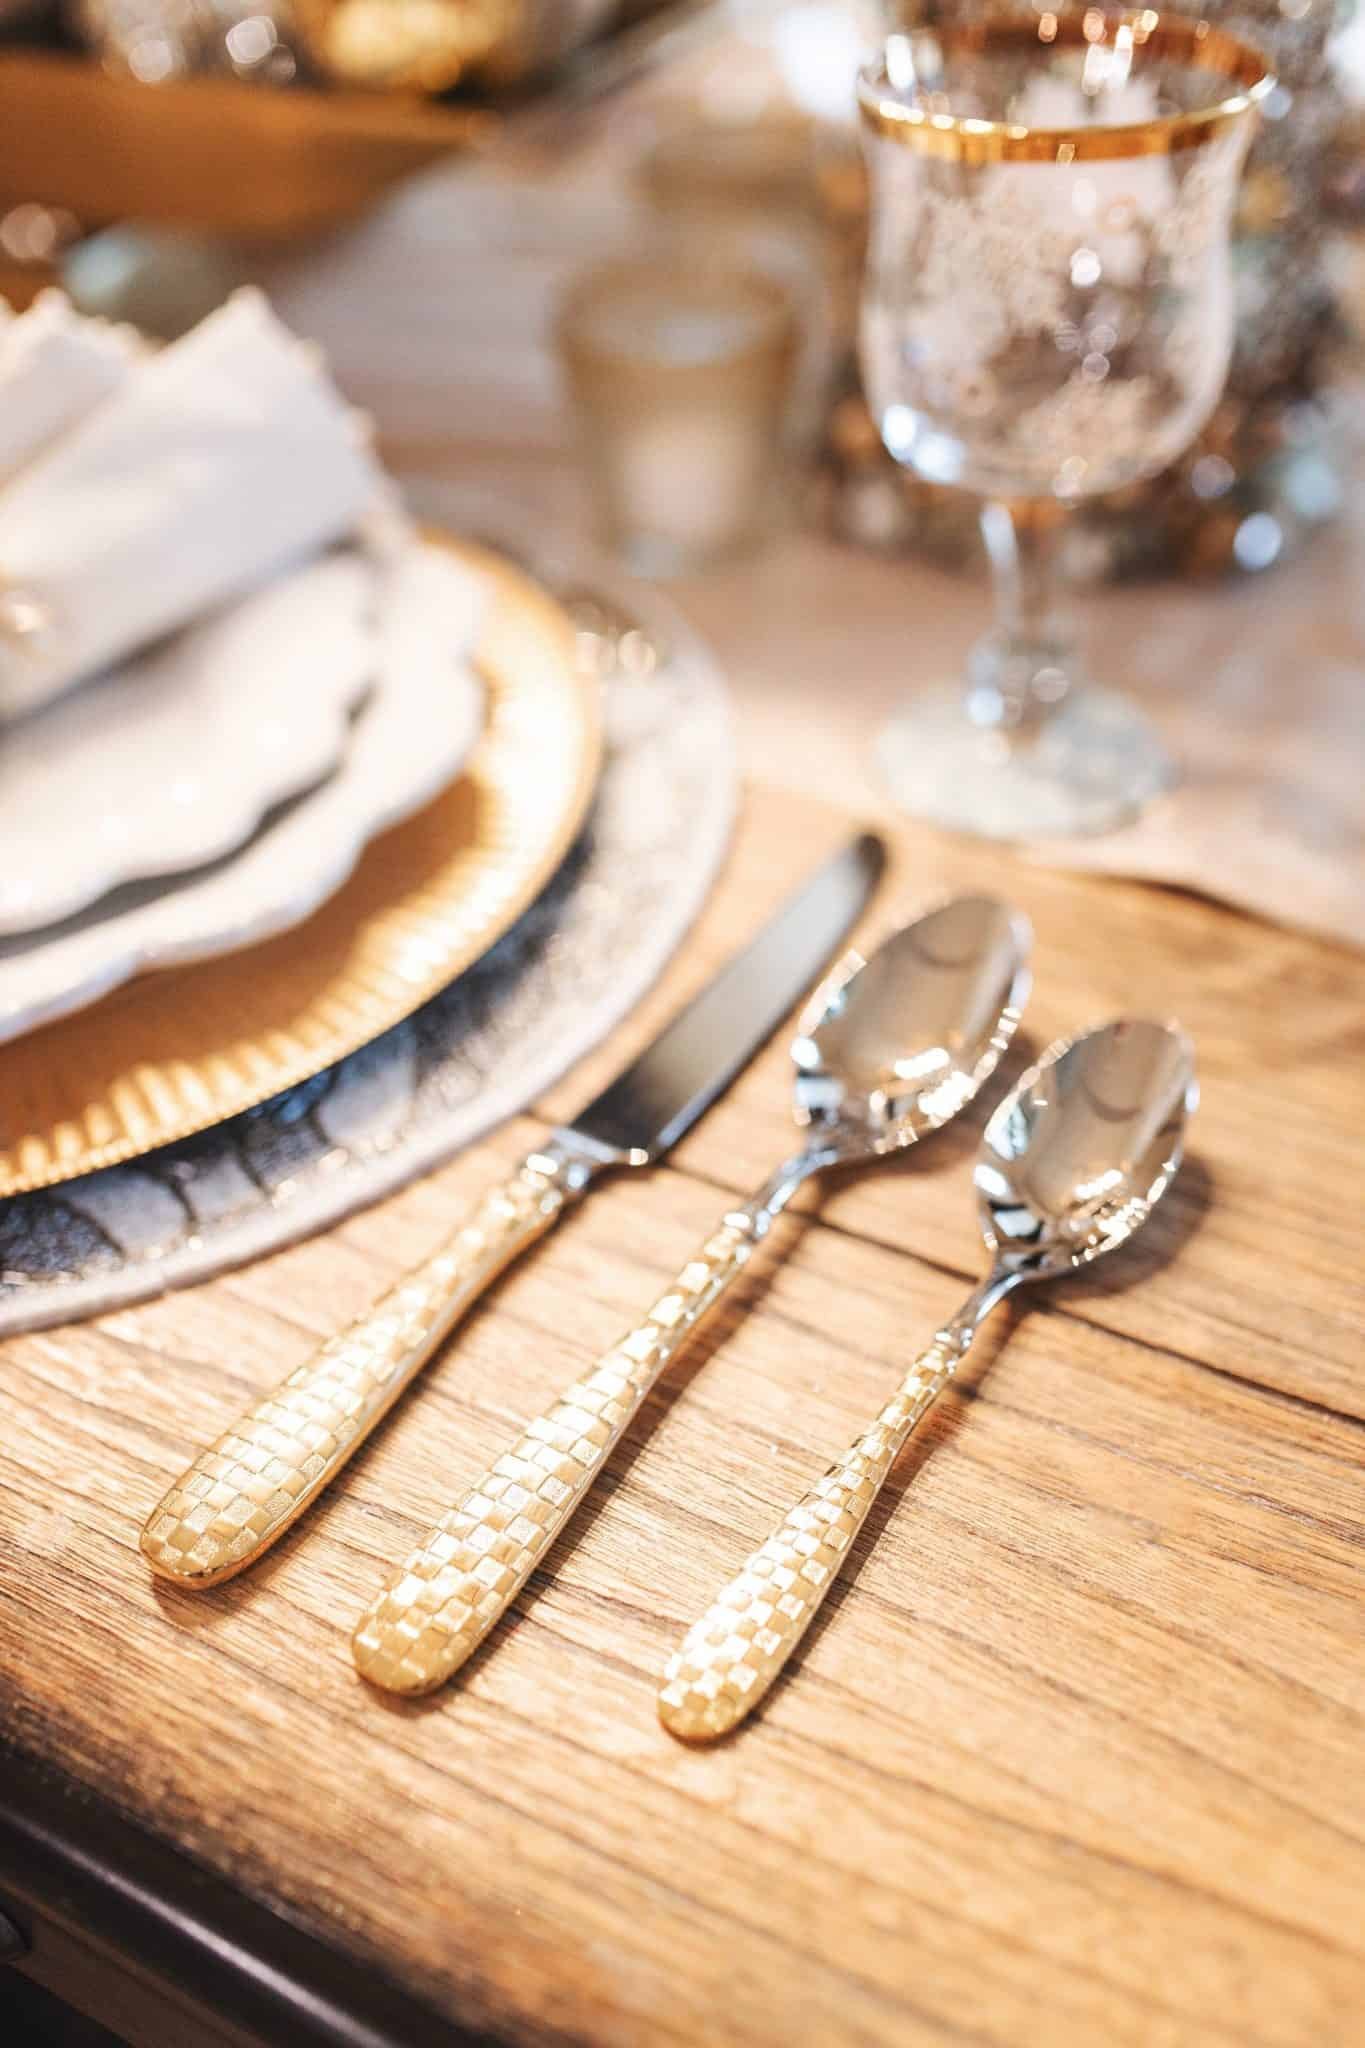 MacKenzie Childs Table Setting Ideas by popular Texas life and style blog, Glamorous Versatility: image of a table set with MacKenzie Childs Sweetbriar collection items.